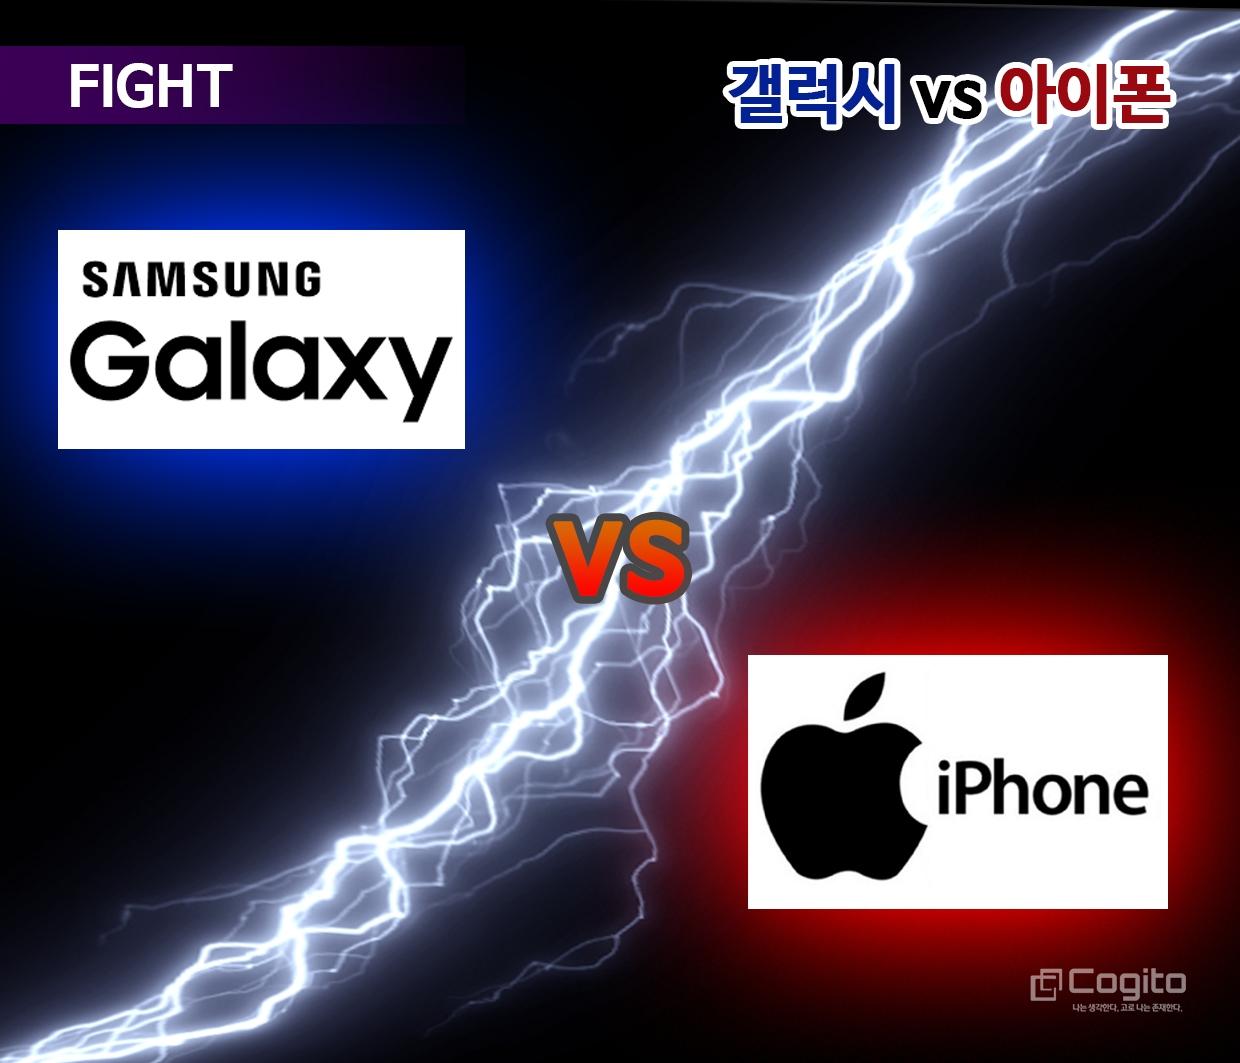 Samsung Galaxy VS Apple iPhone